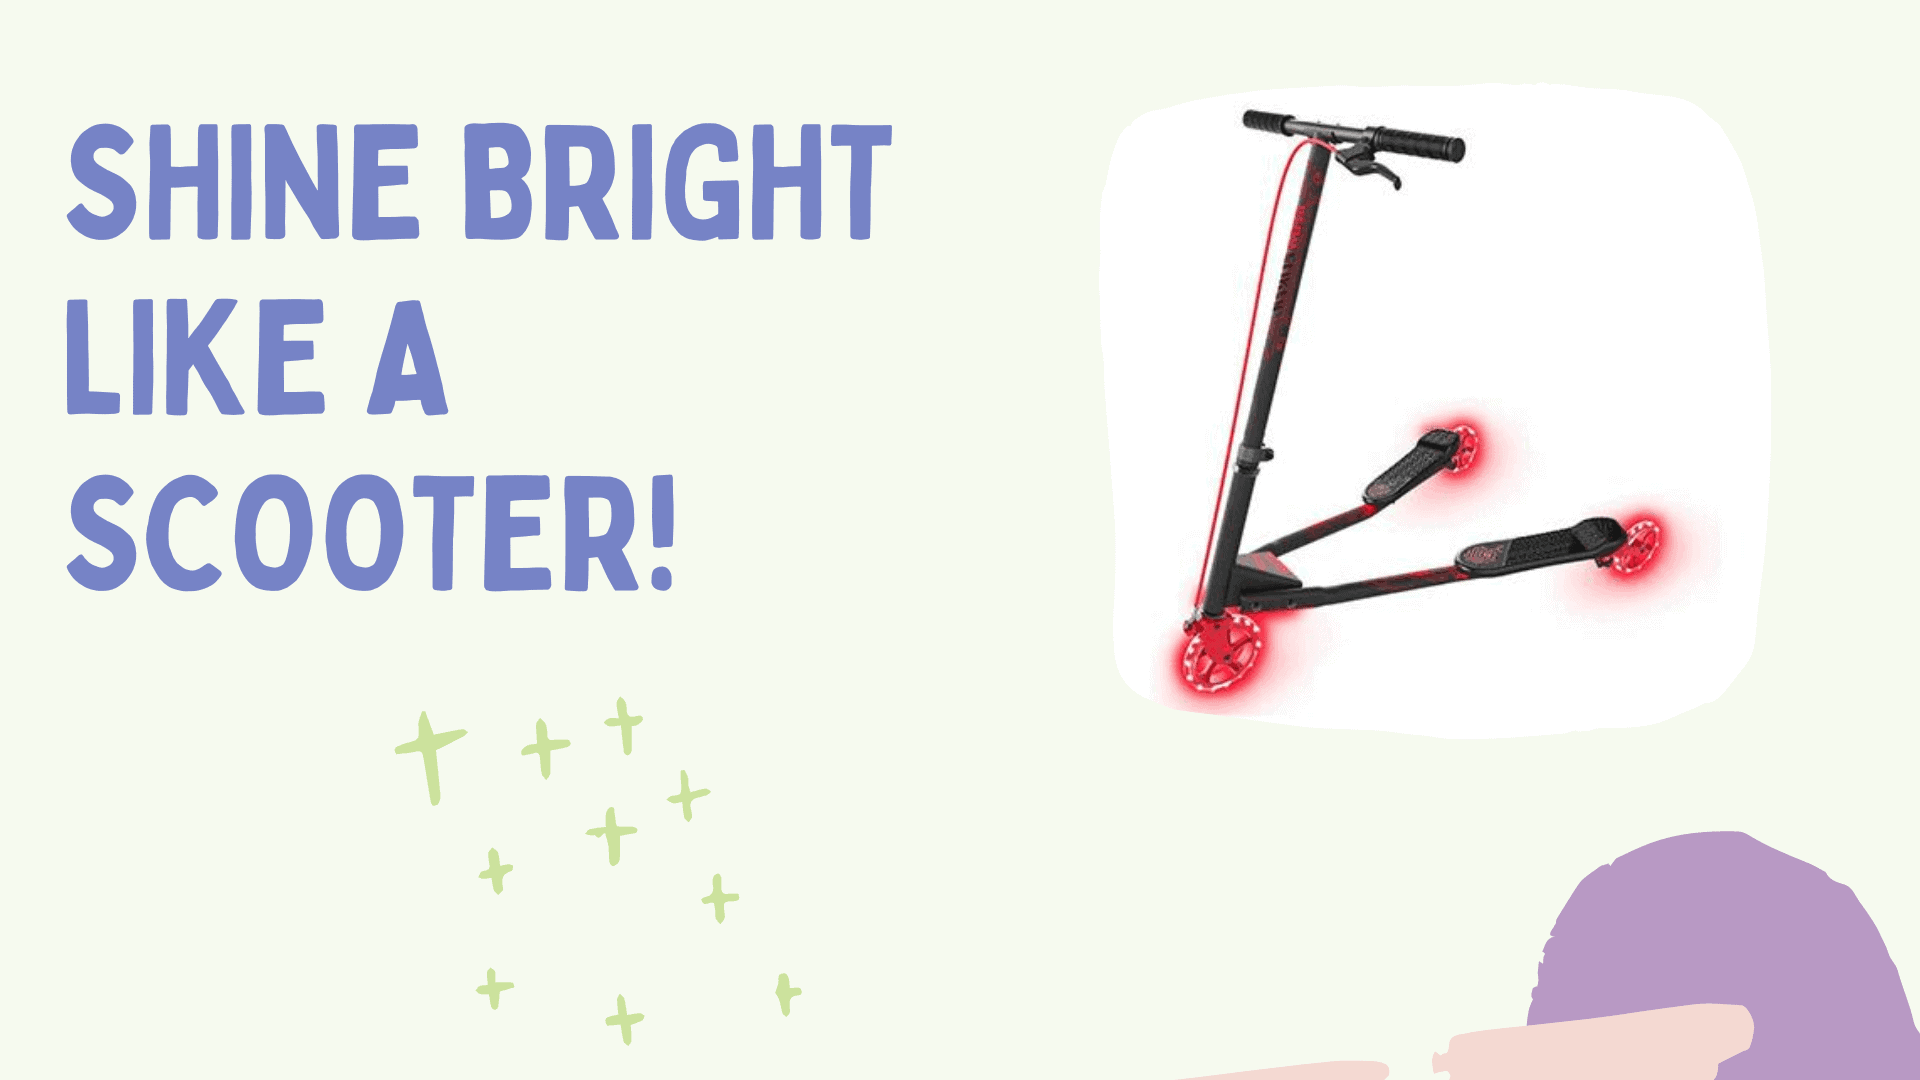 shine bright like a scooter